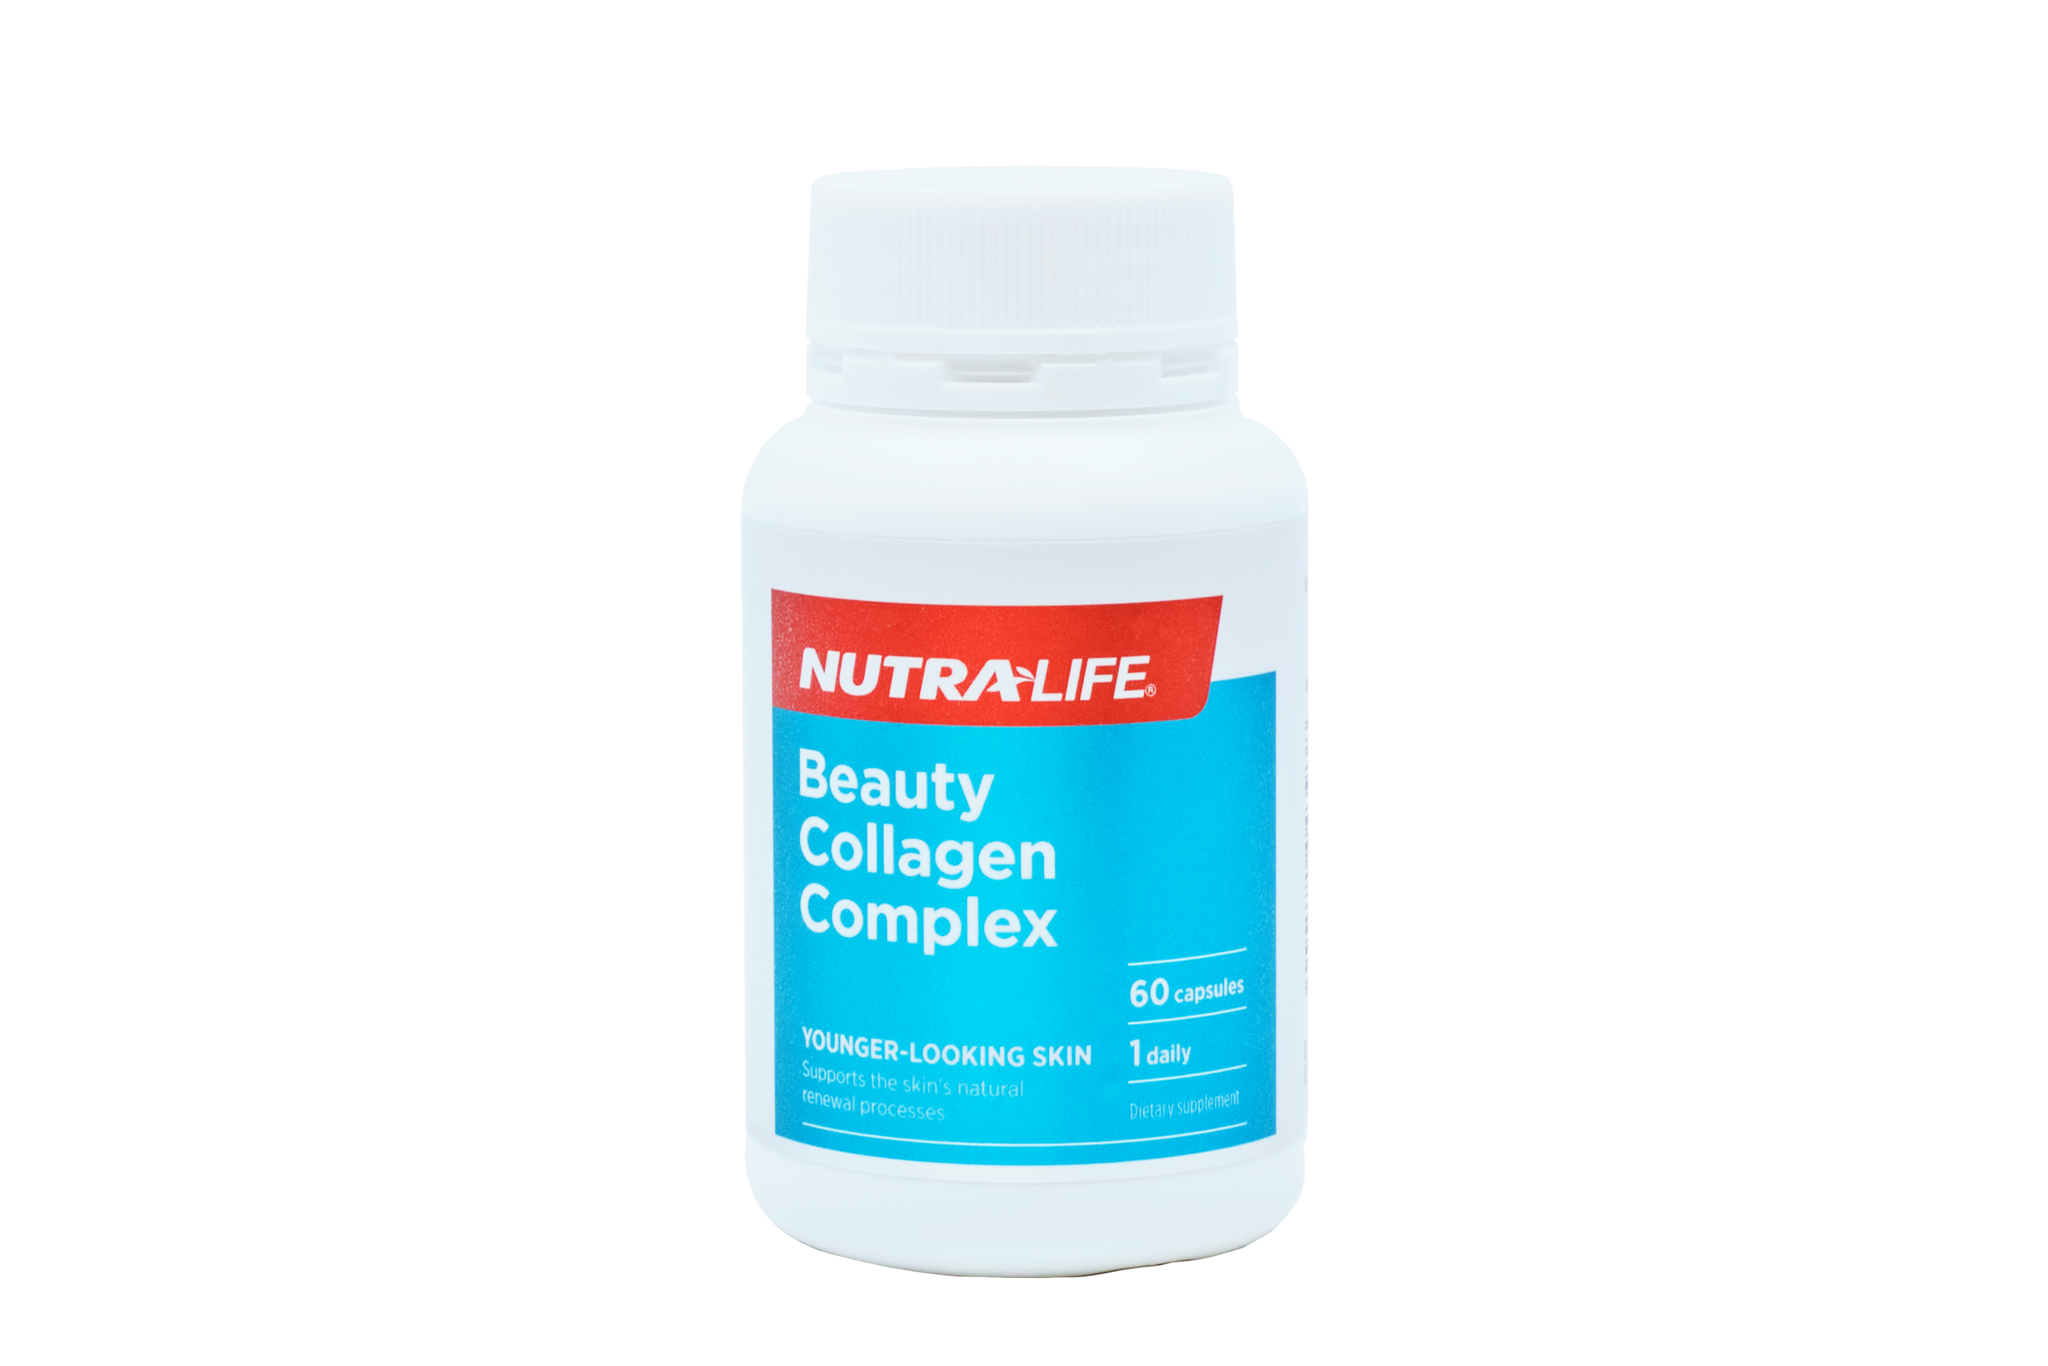 Nutralife Beauty Collagen Complex 60 capsules